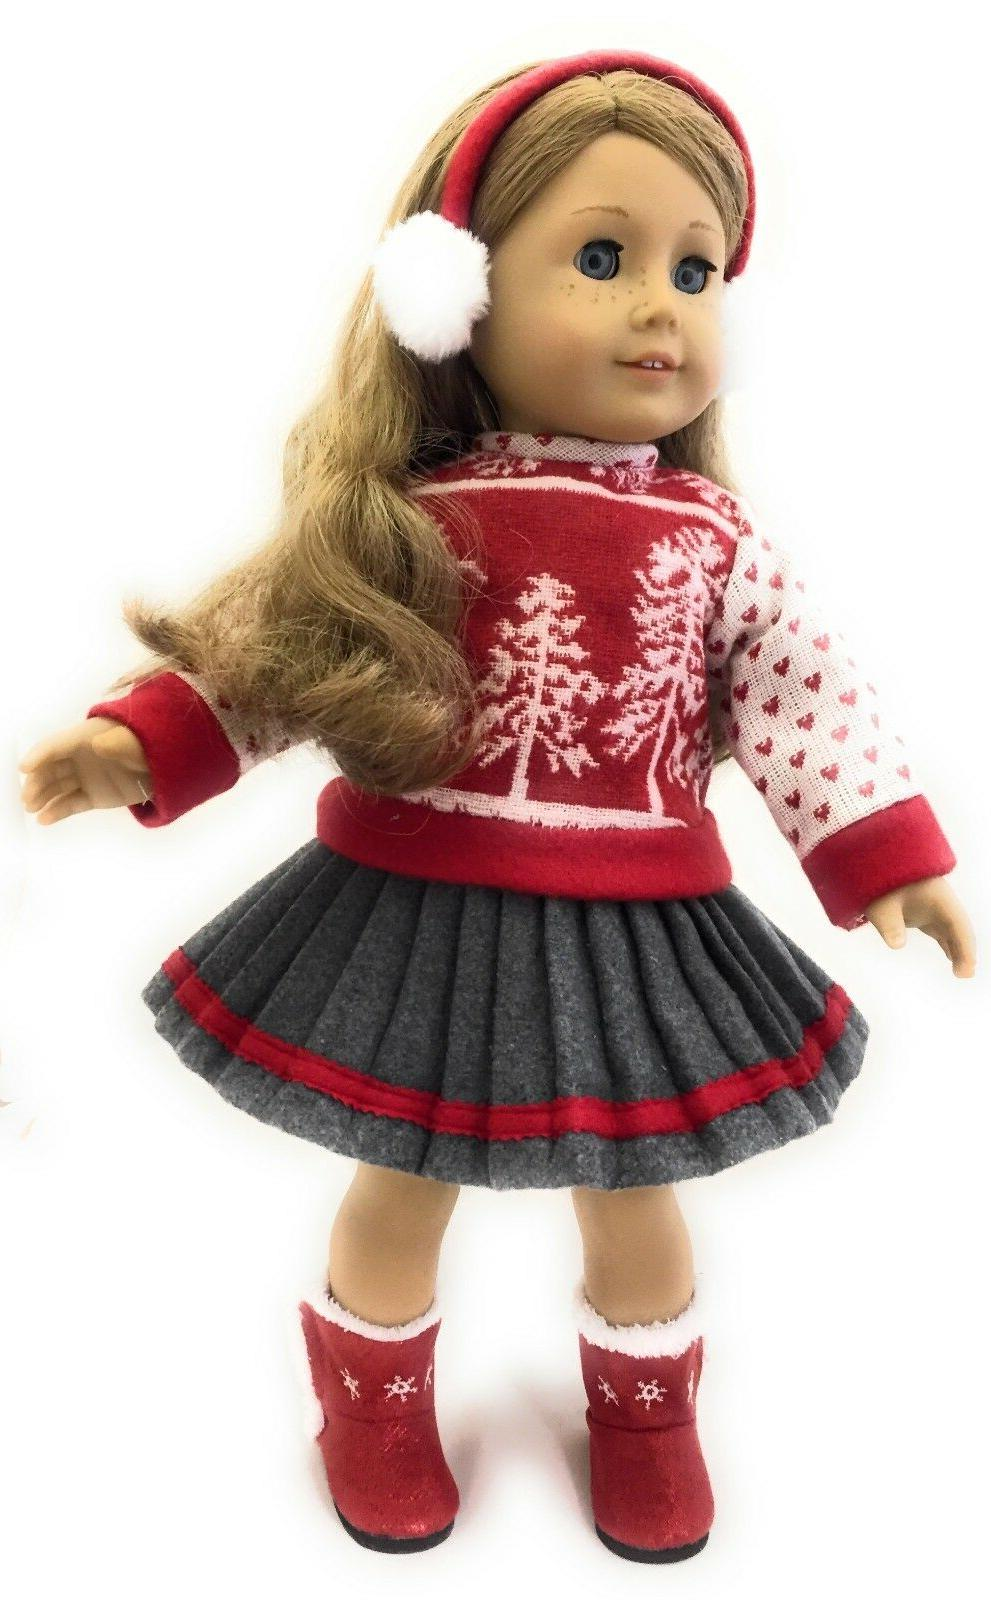 red winter sweater skirt and earmuffs